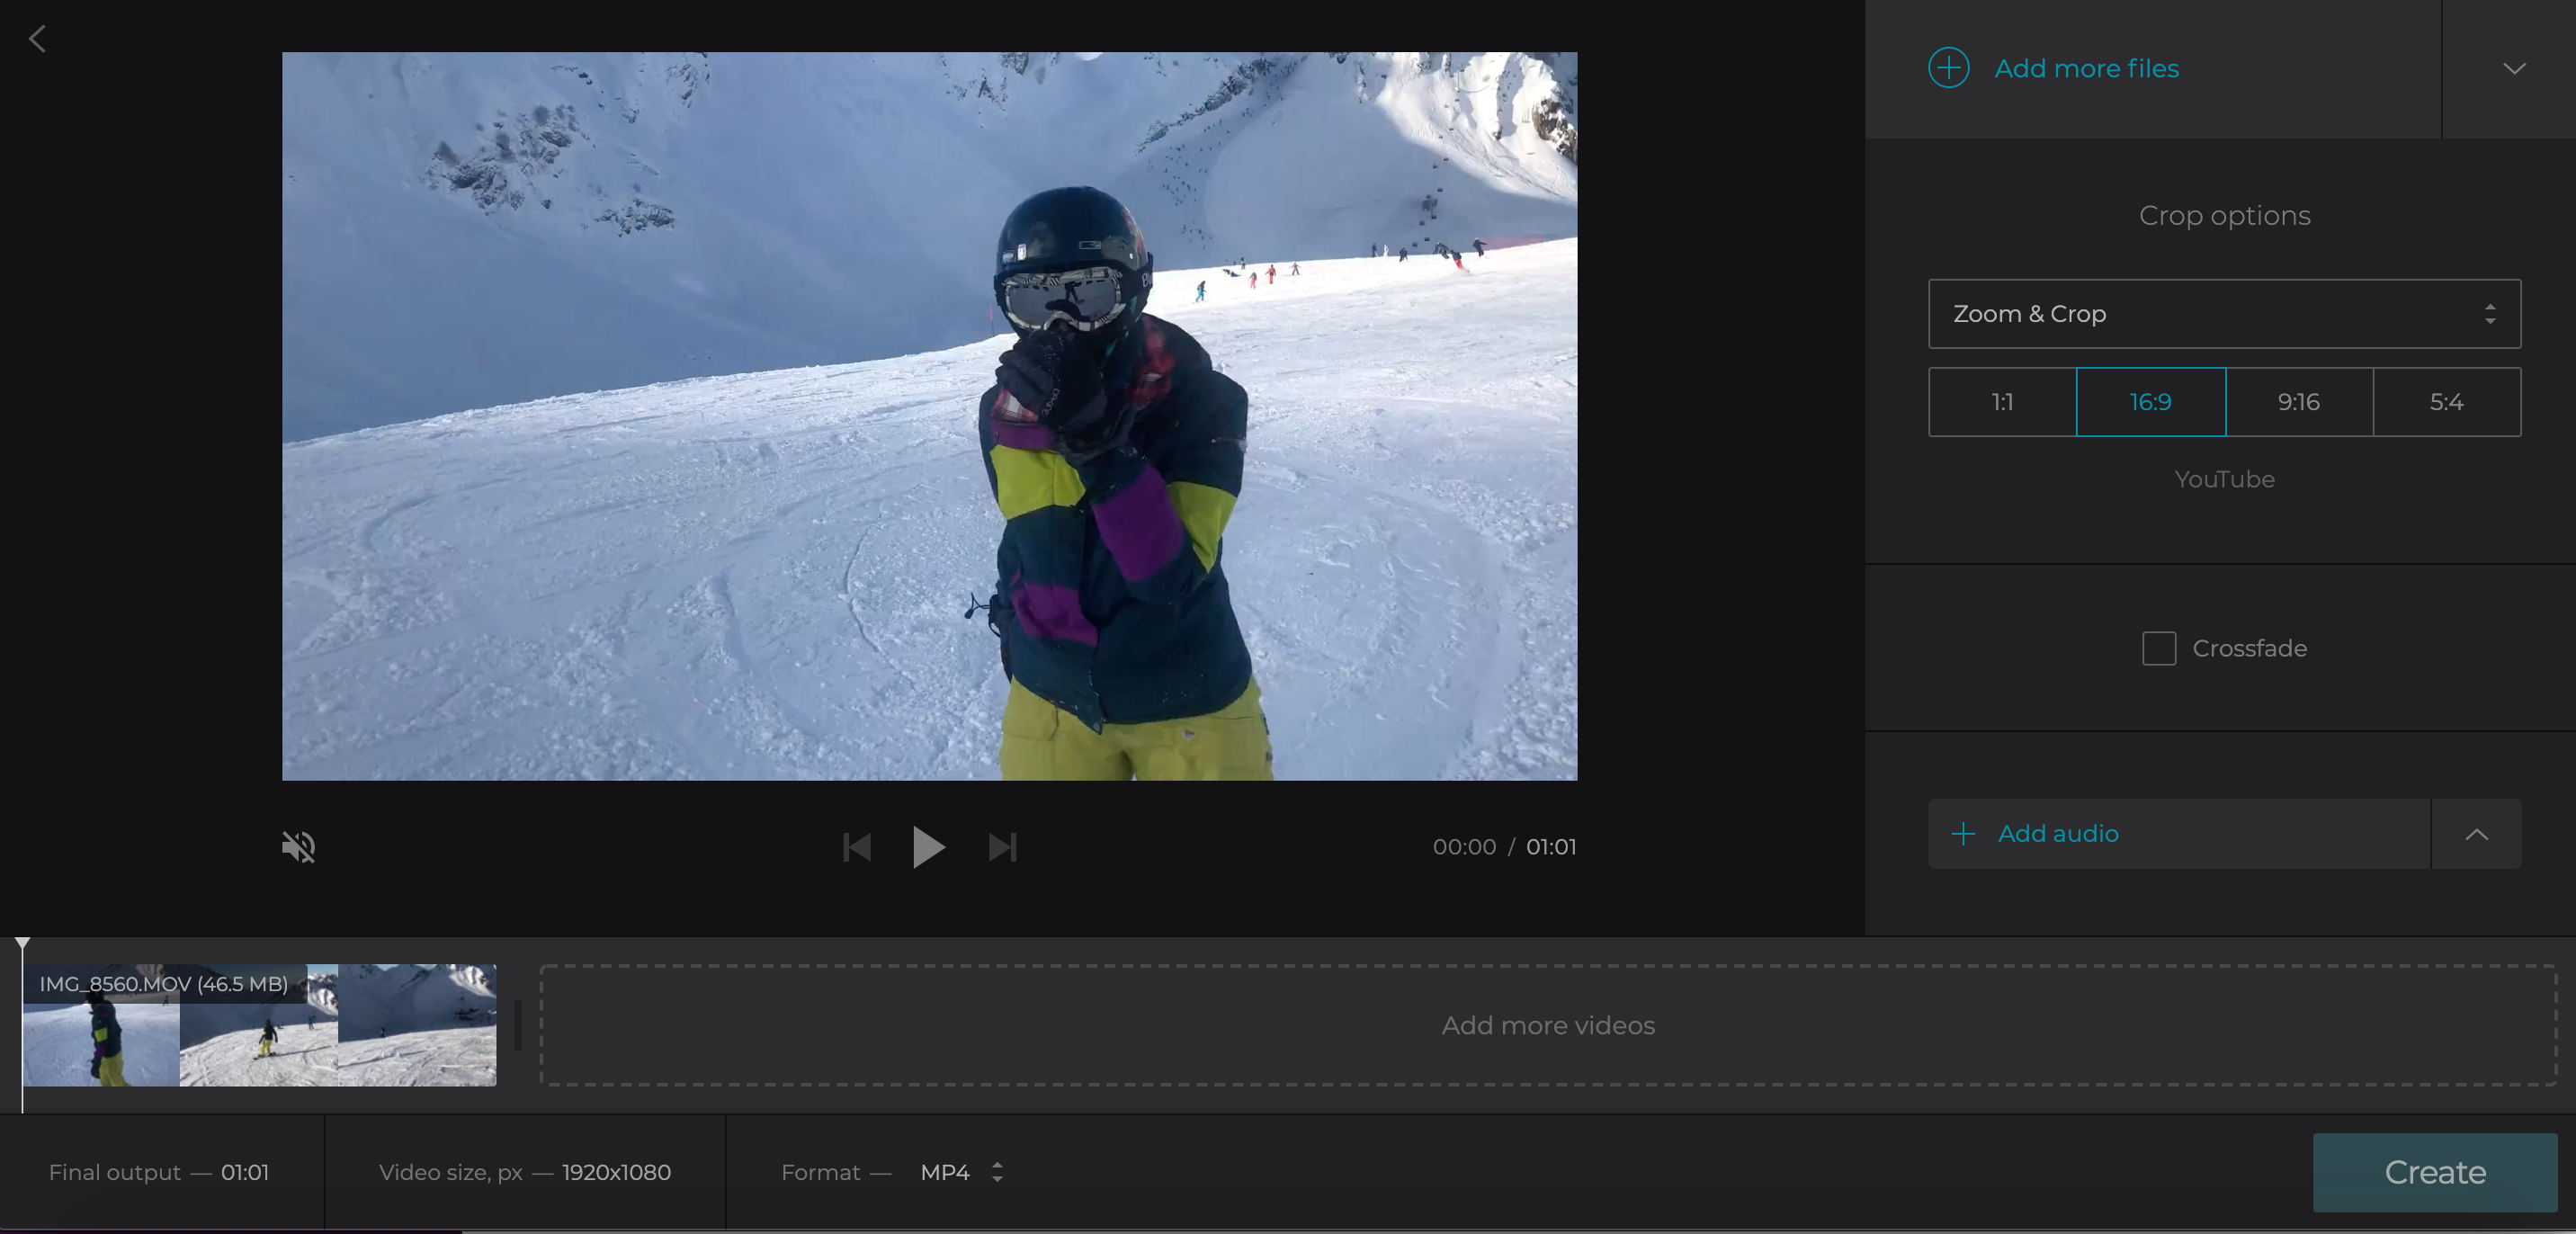 Upload more images to create video image sequence